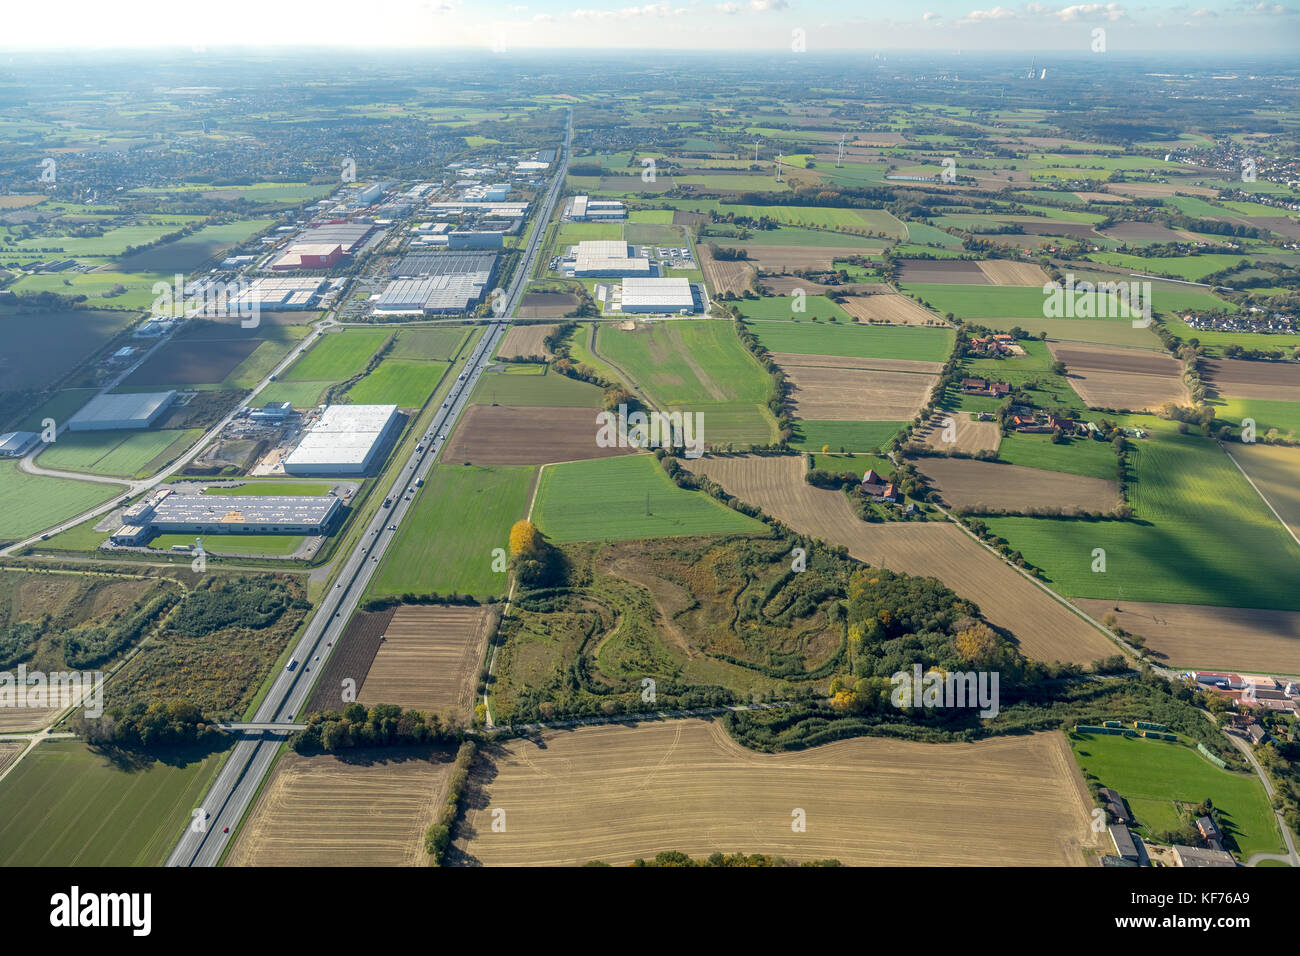 INLOG Park, logistics area, planning for industrial development, A2 motorway, industrial estate, urban planning, - Stock Image